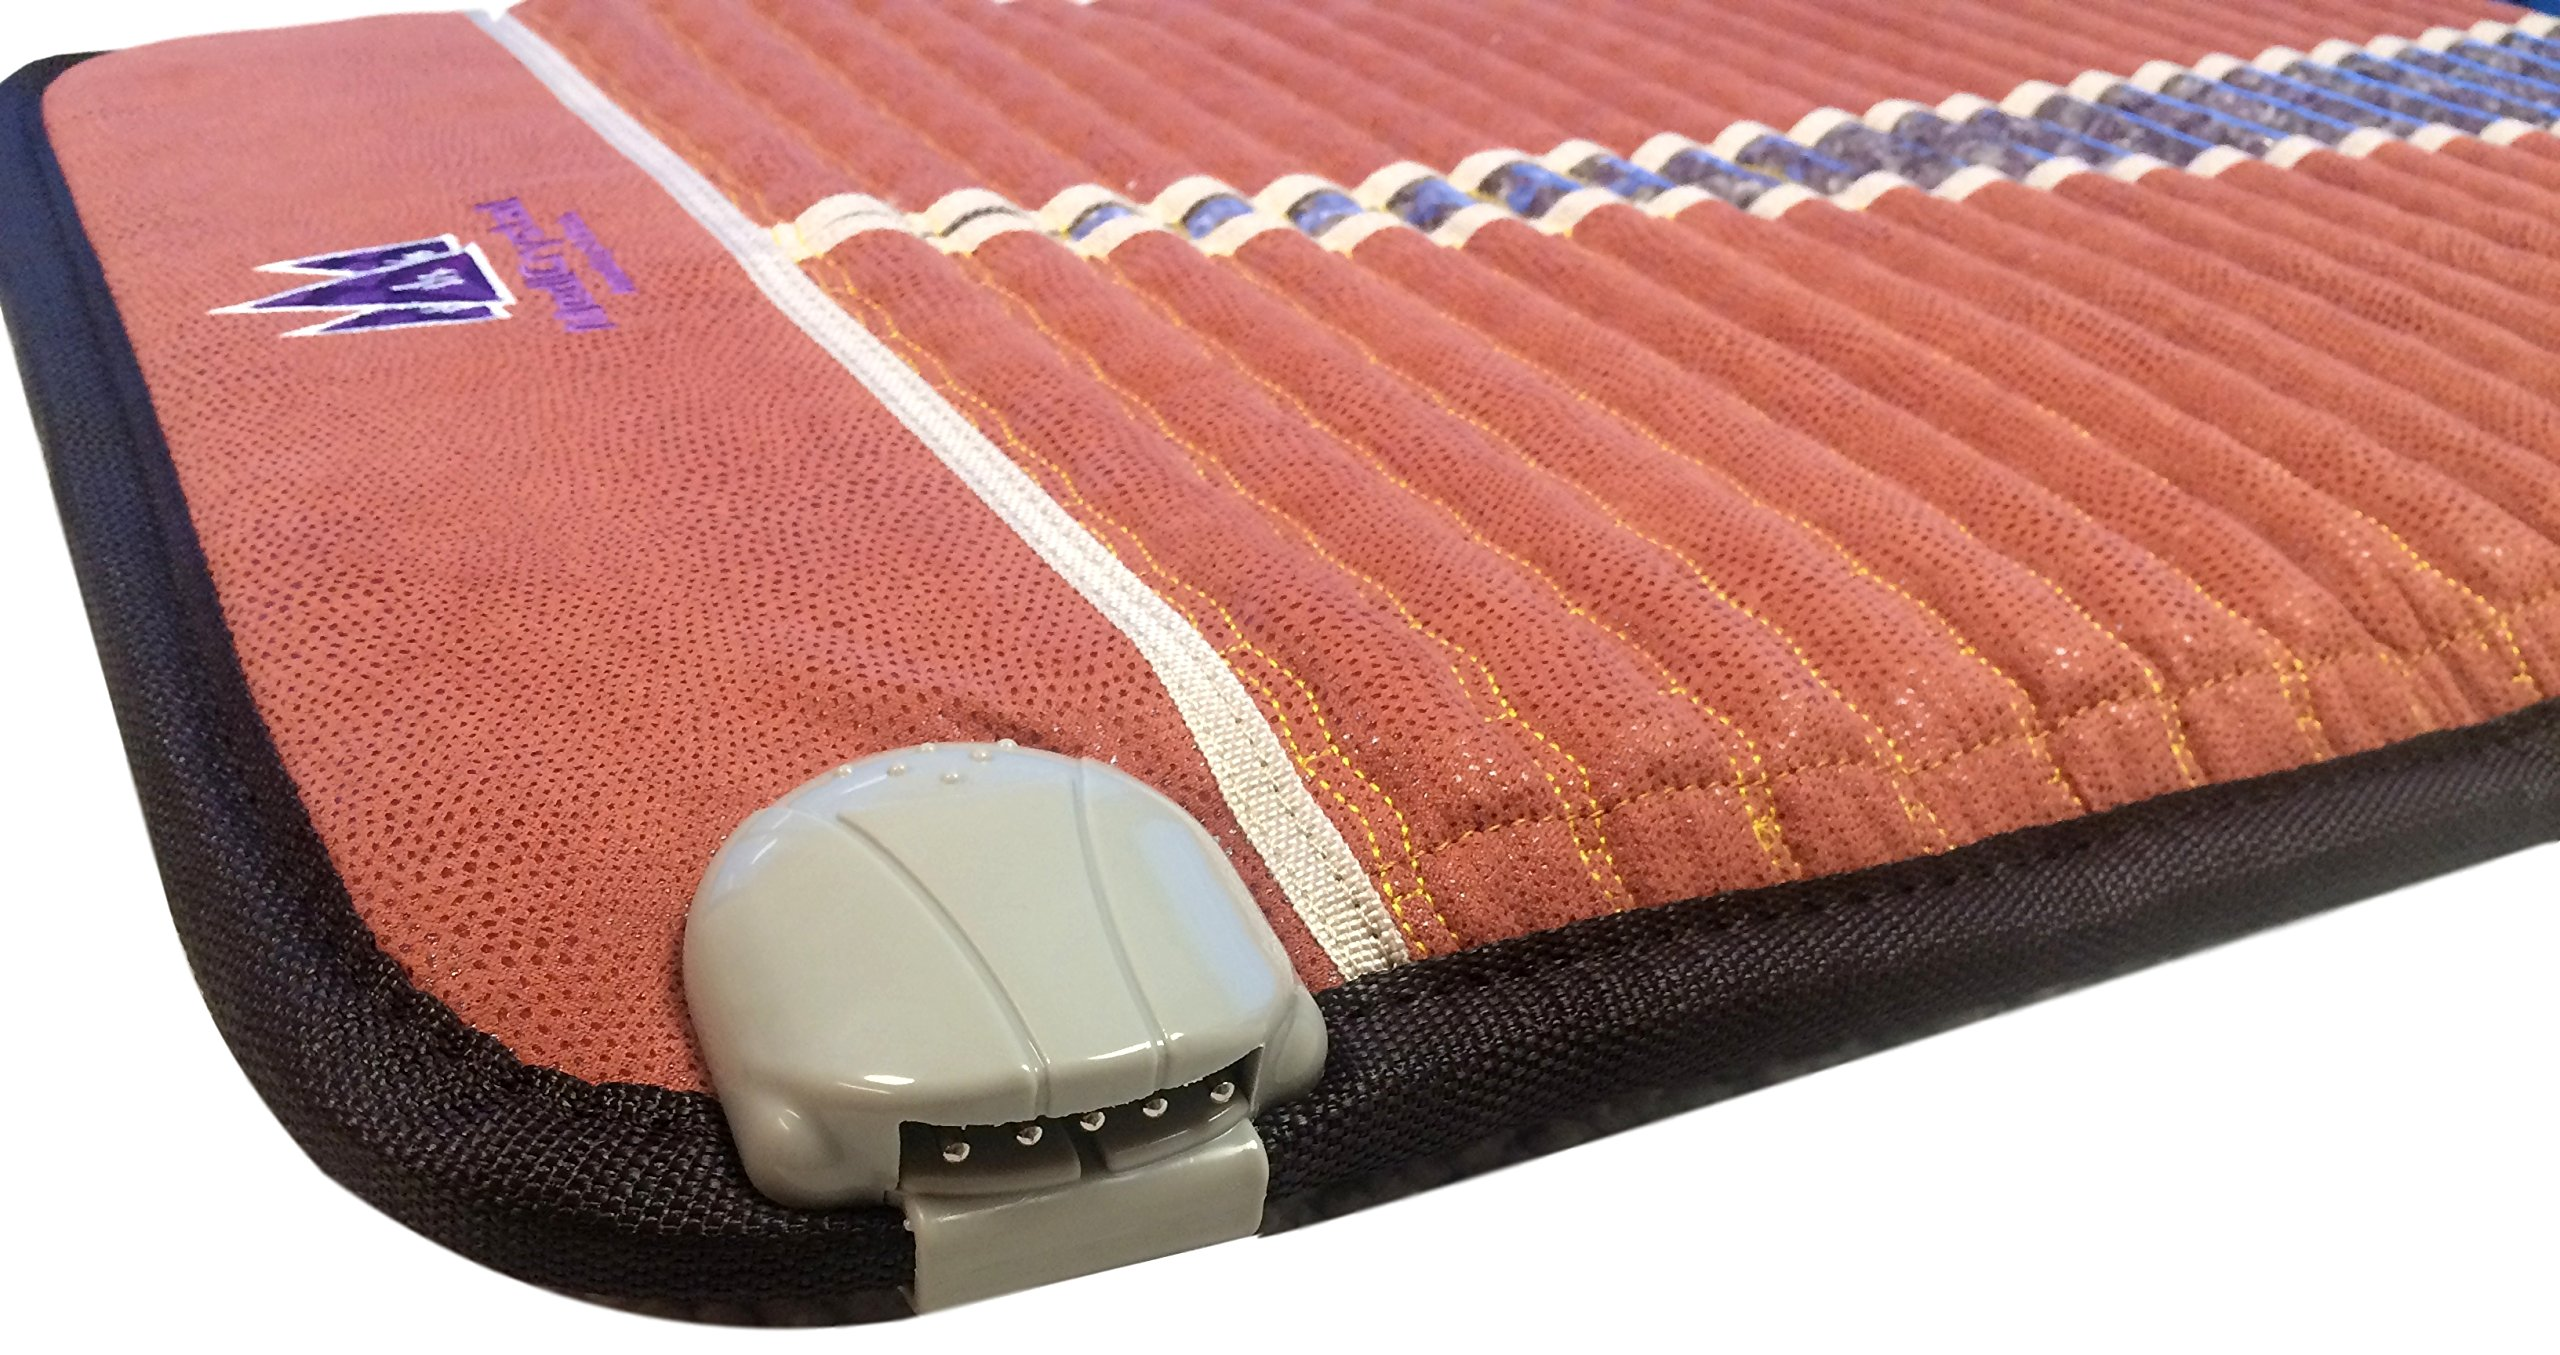 Far Infrared Amethyst Mat Midsize (59''L x 24''W) - Negative Ion - FIR Therapy - Natural Amethyst - FDA Registered Manufacturer - Adjustable Temperature Setting - Hot Crystal Heating Pad - Reddish Brown by MediCrystal (Image #5)